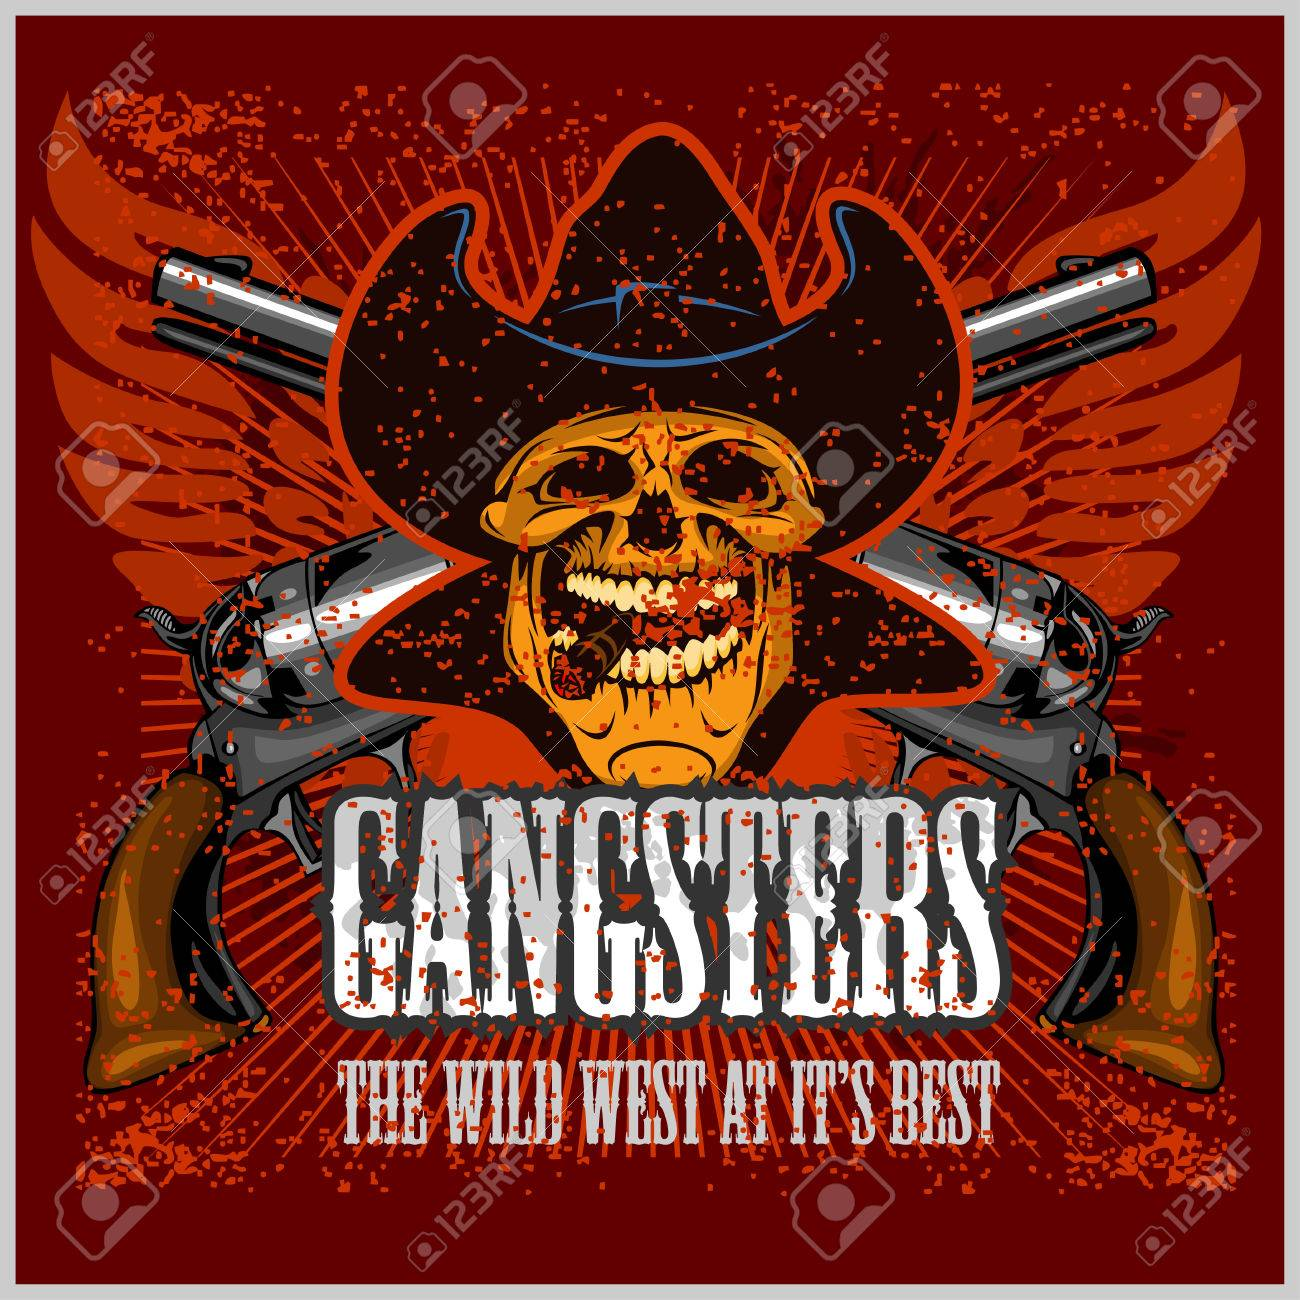 Gangster skull with cowboy hat and pistols - grunge vintage poster Stock  Vector - 51237774 a983e4f0e7b2